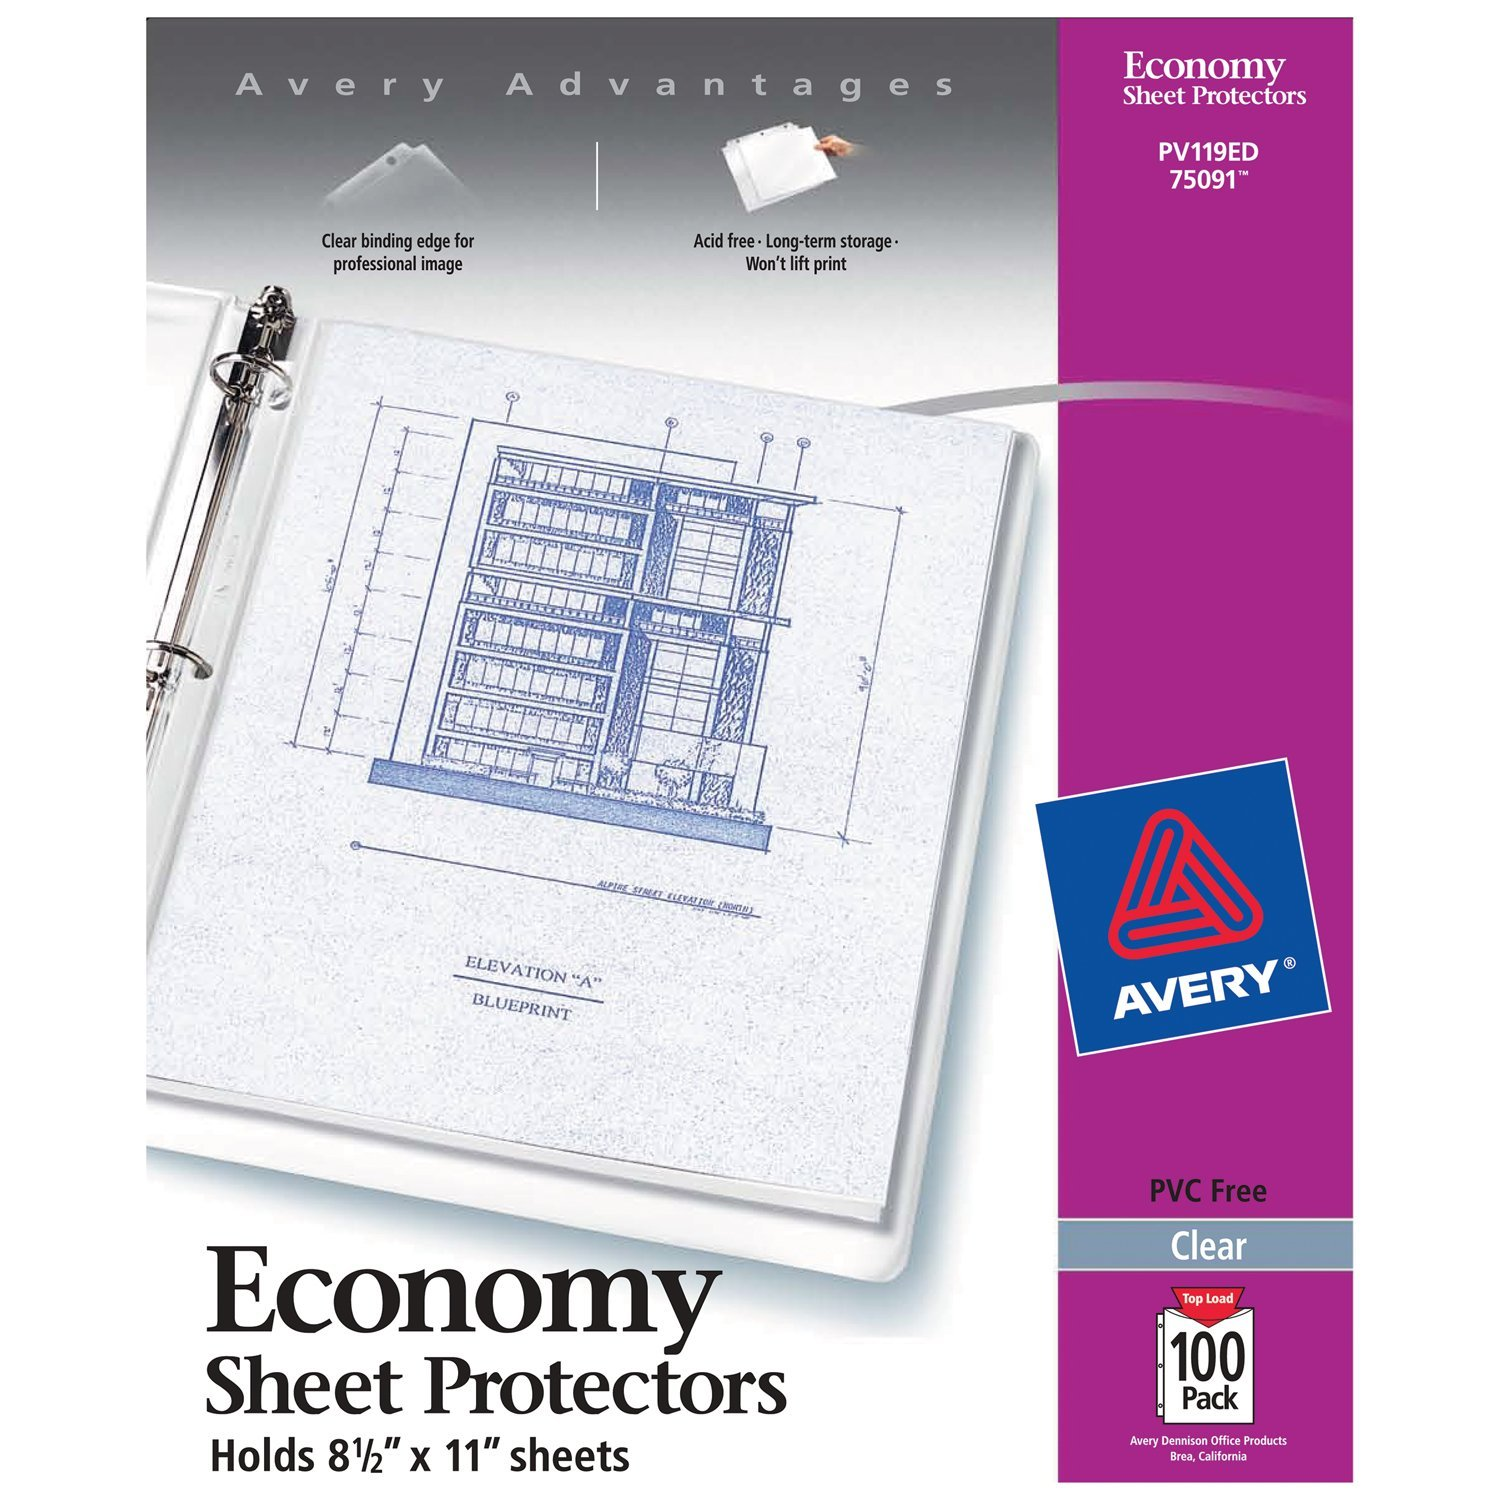 Avery Economy Clear Sheet Protectors, 8.5'' x 11'', Acid-Free, Archival Safe, Top Loading, 100ct (75091)